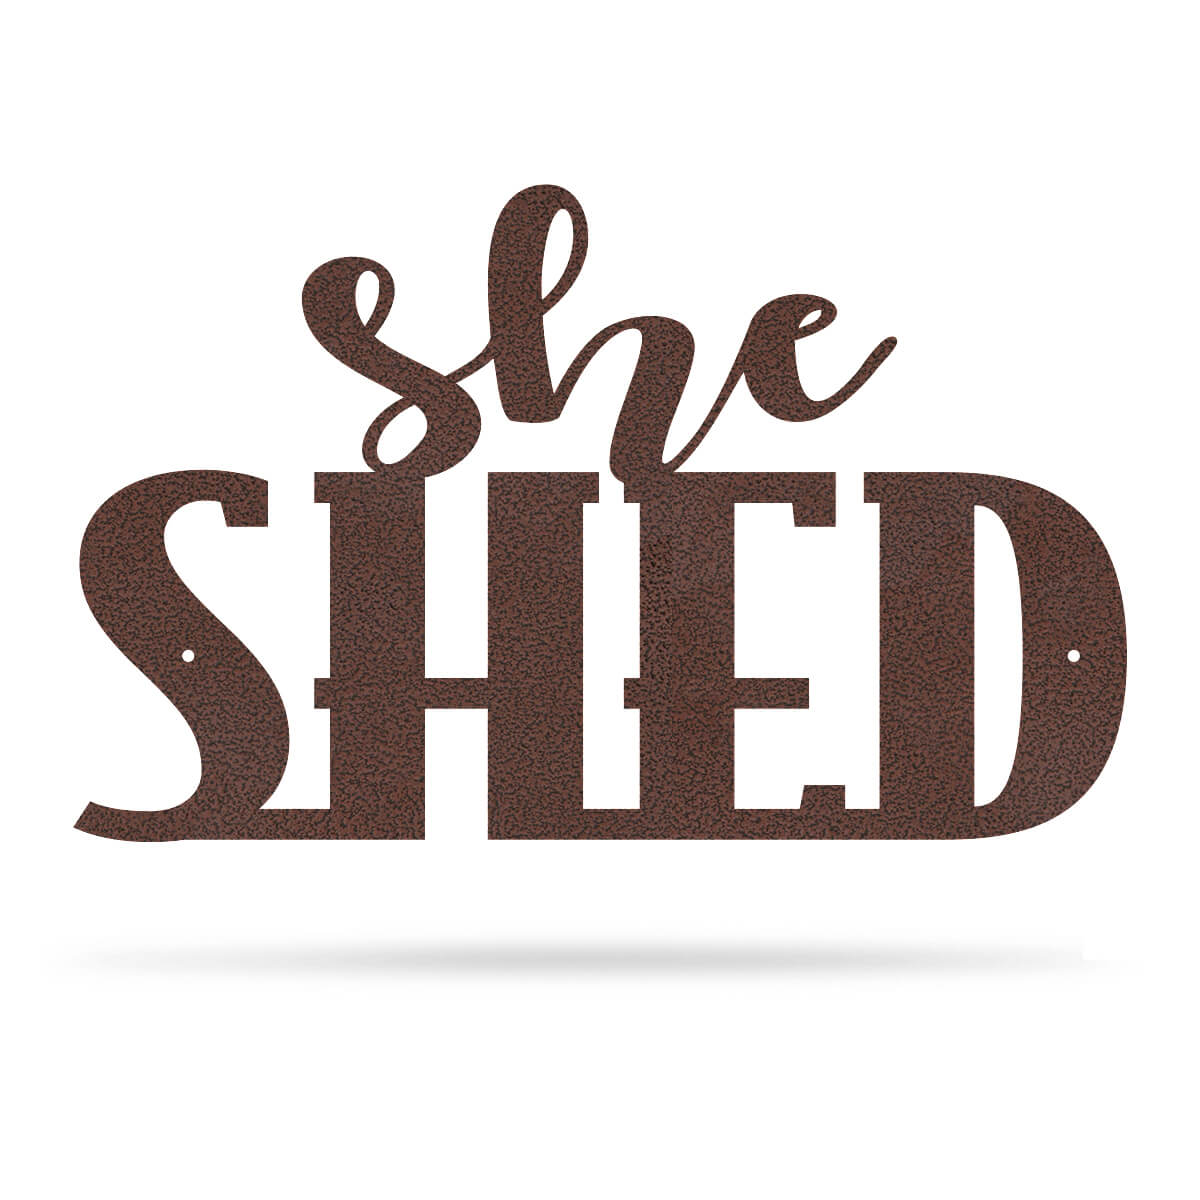 "She Shed Wall Art 7.5""x12"" / Penny Vein - RealSteel Center"